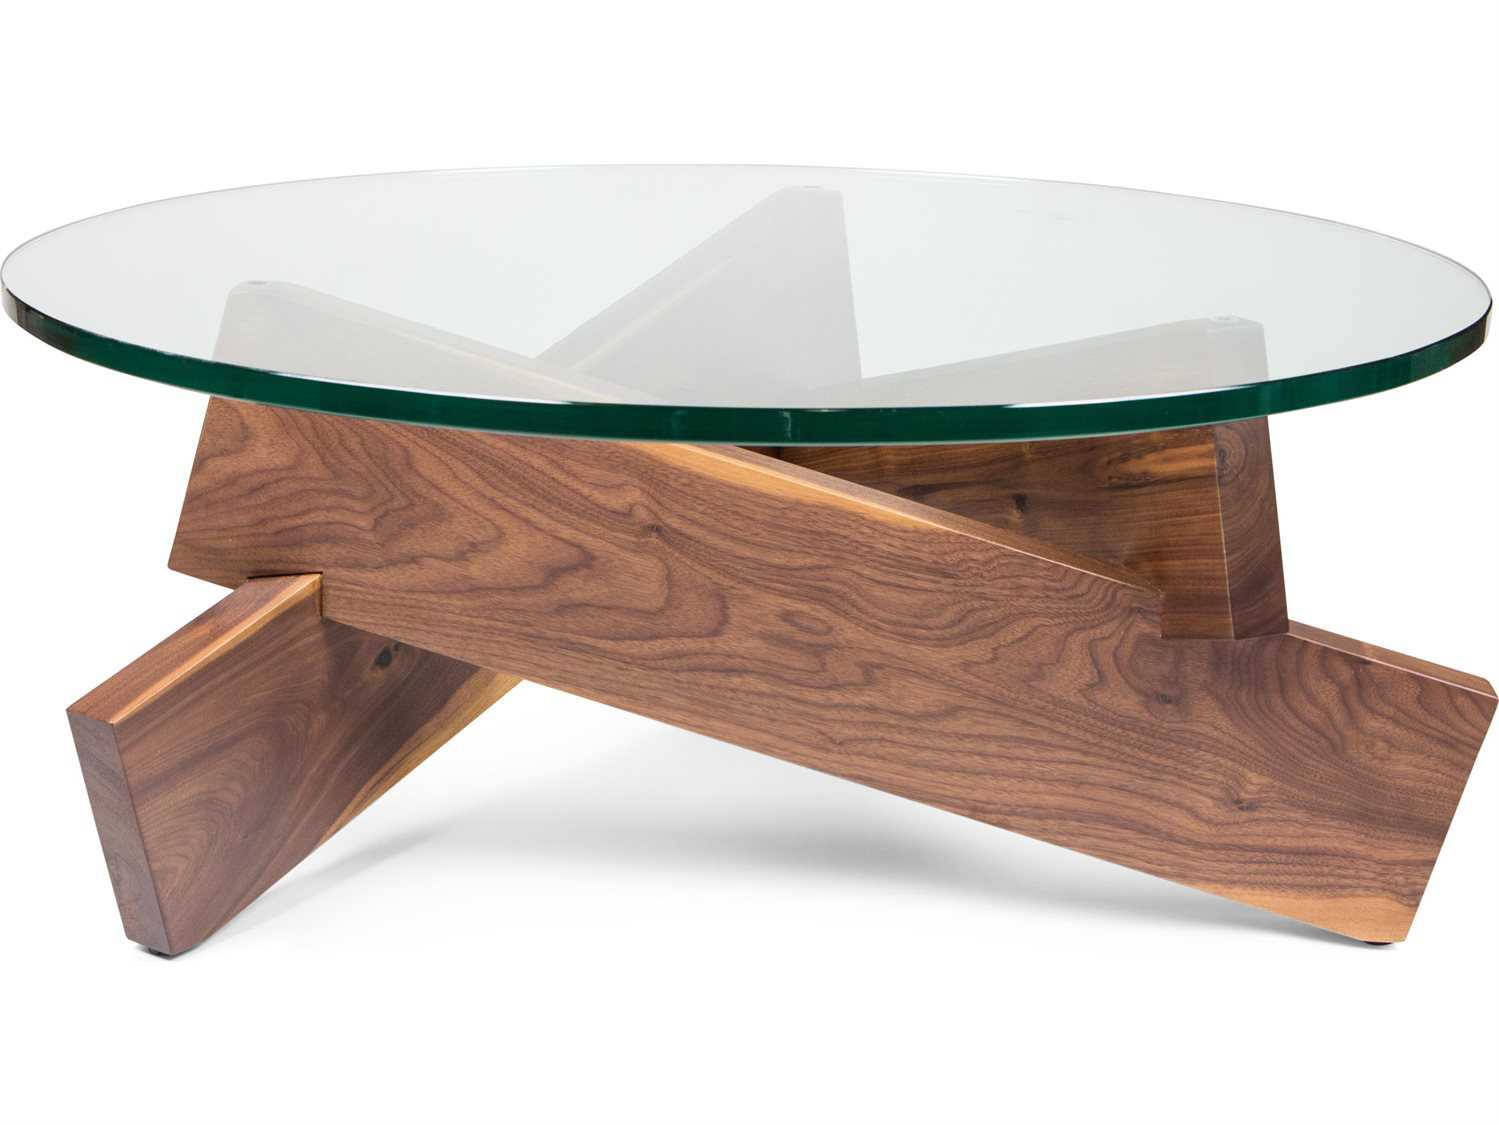 Ion Design Plank Walnut 36 39 39 Round Coffee Table With Glass Top Idp13090